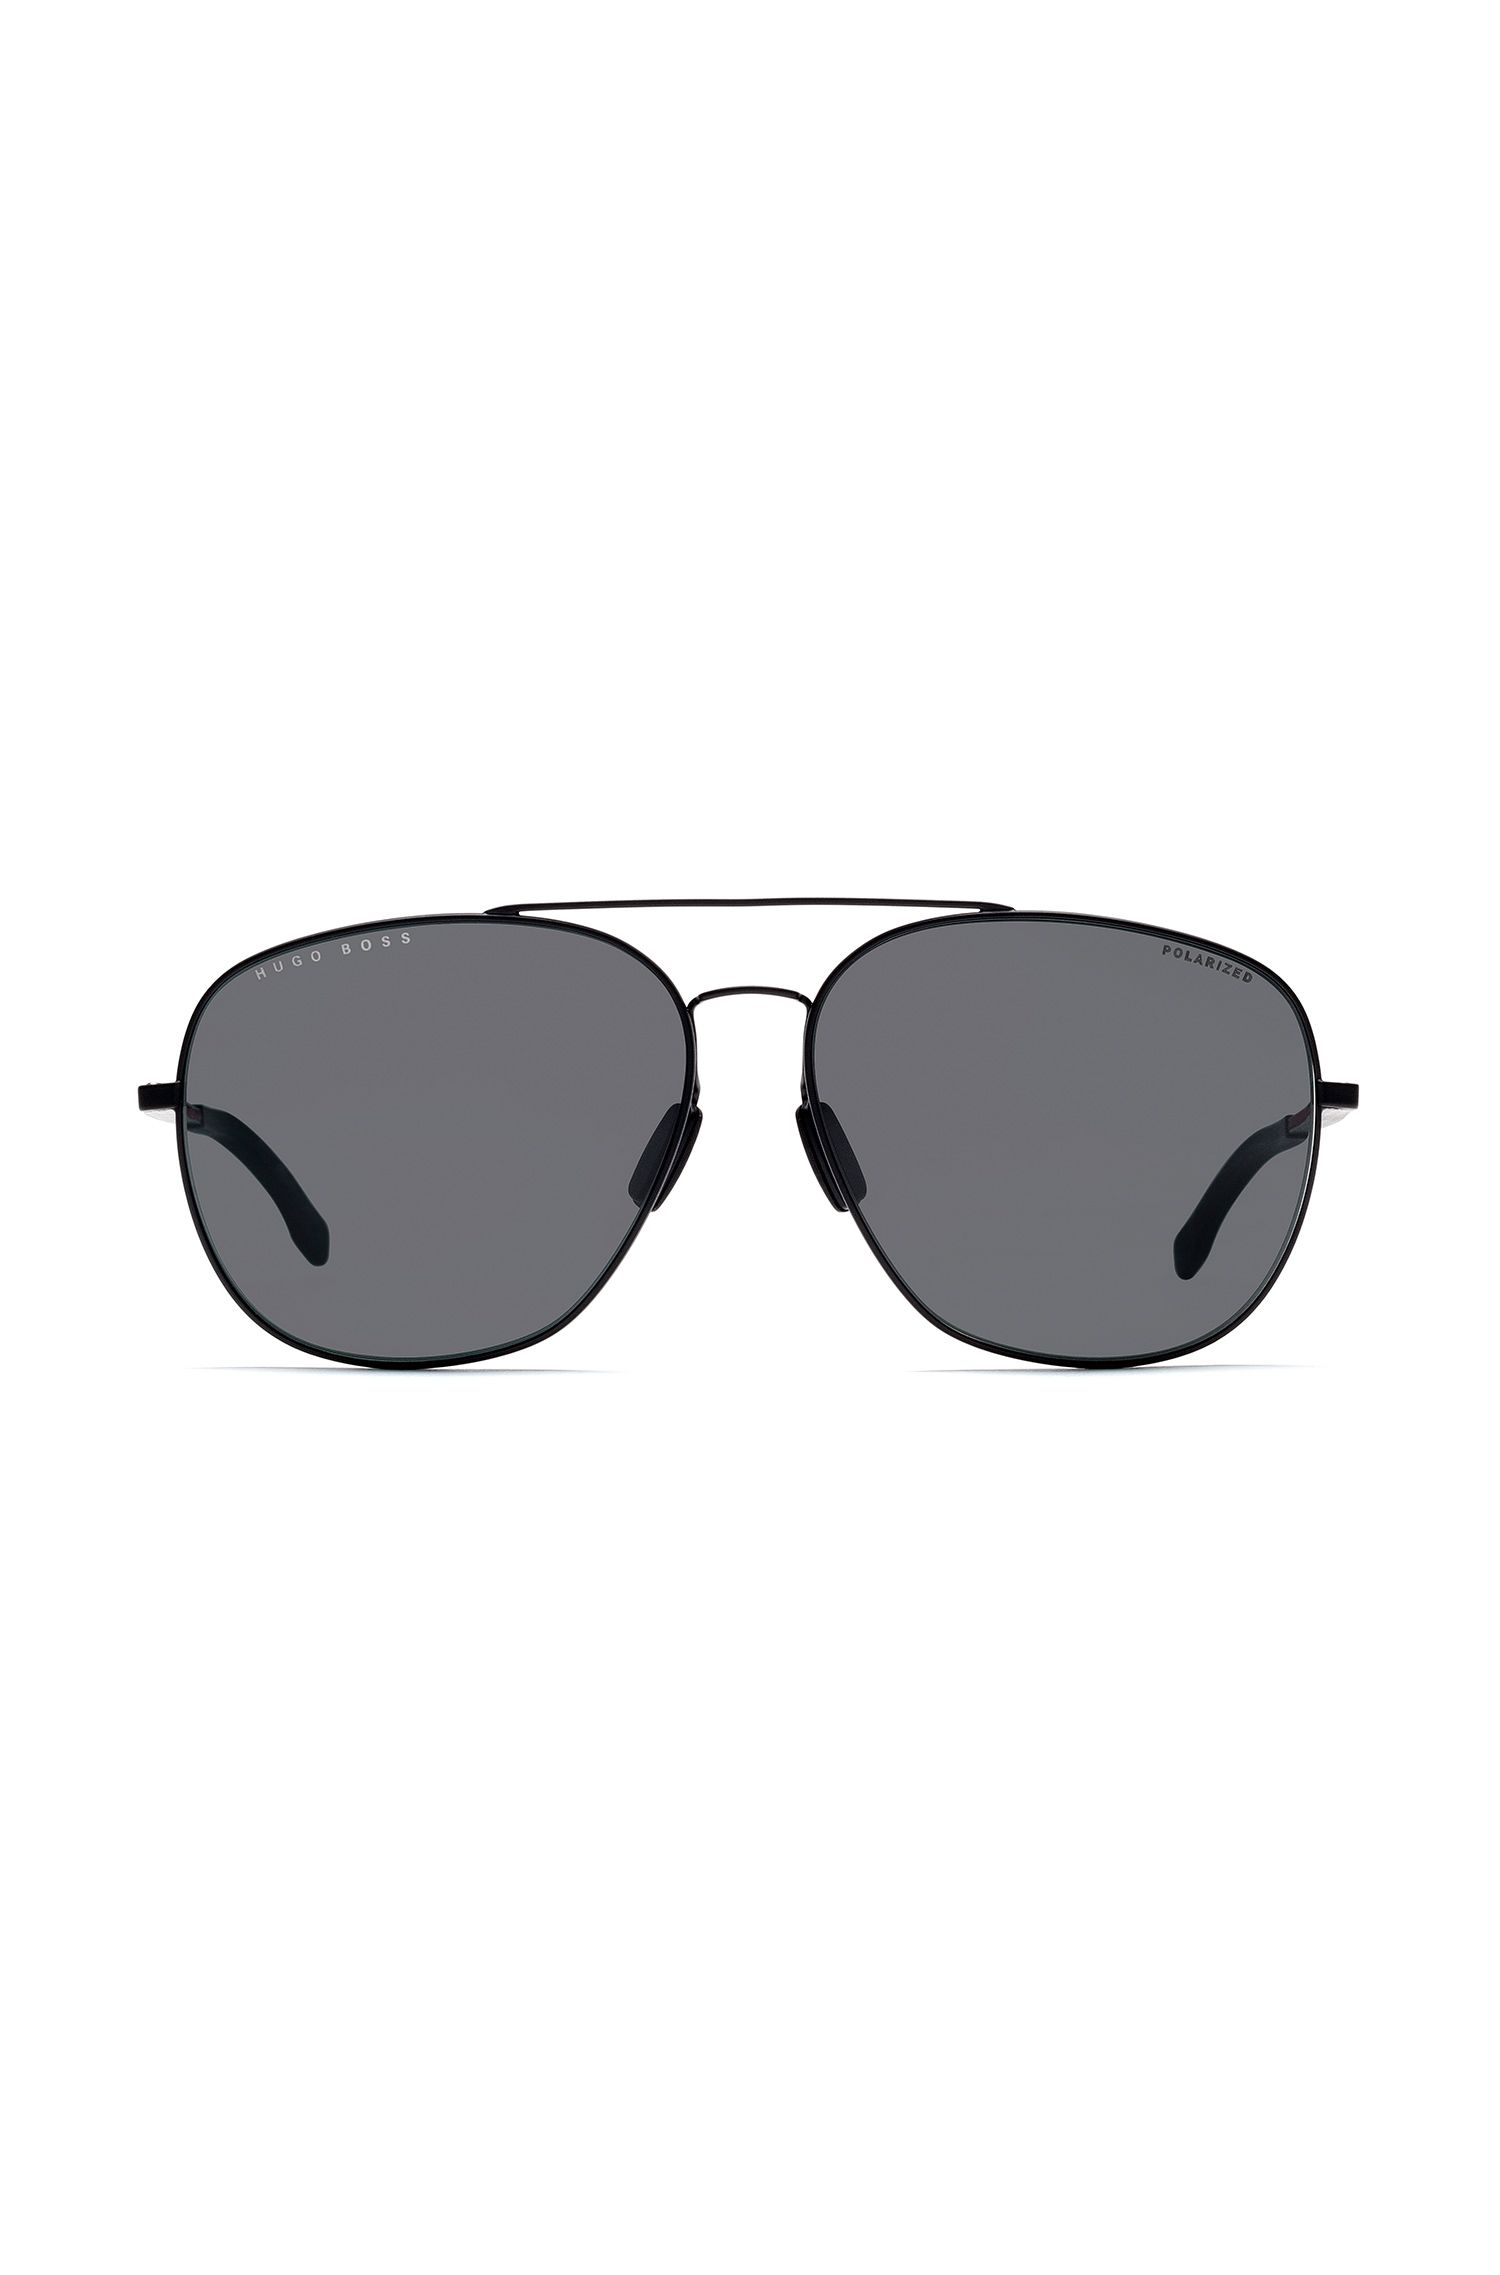 Double-bridge sunglasses with polarized lenses, Assorted-Pre-Pack